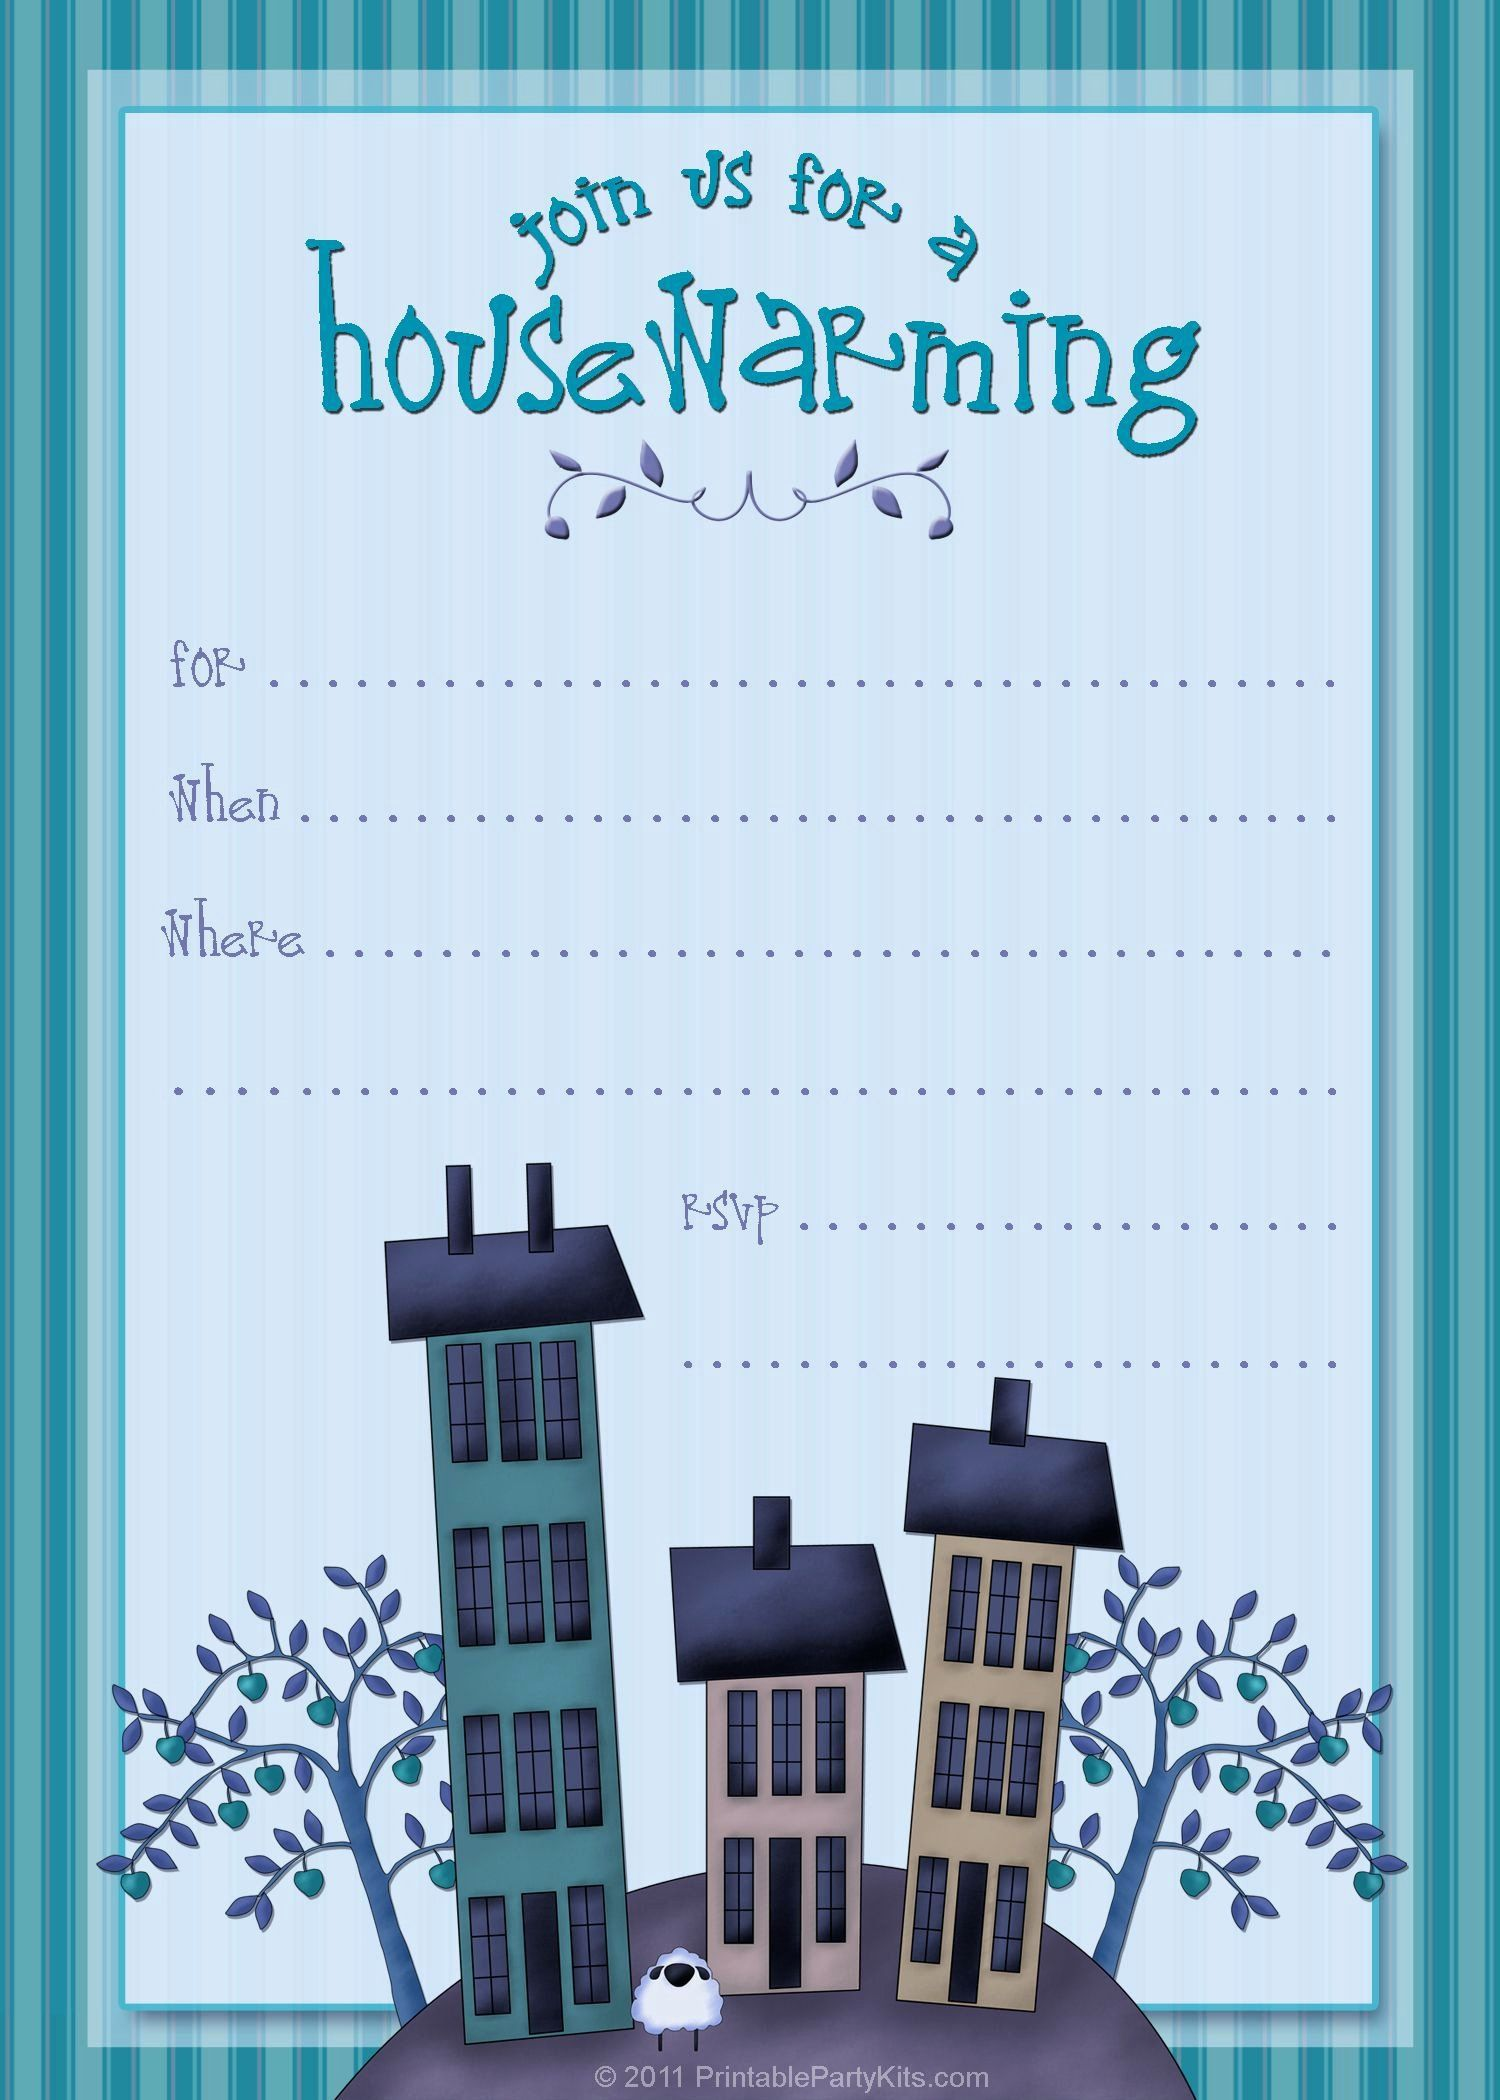 003 Dreaded Housewarming Party Invitation Template Highest Clarity  Templates Free Download CardFull